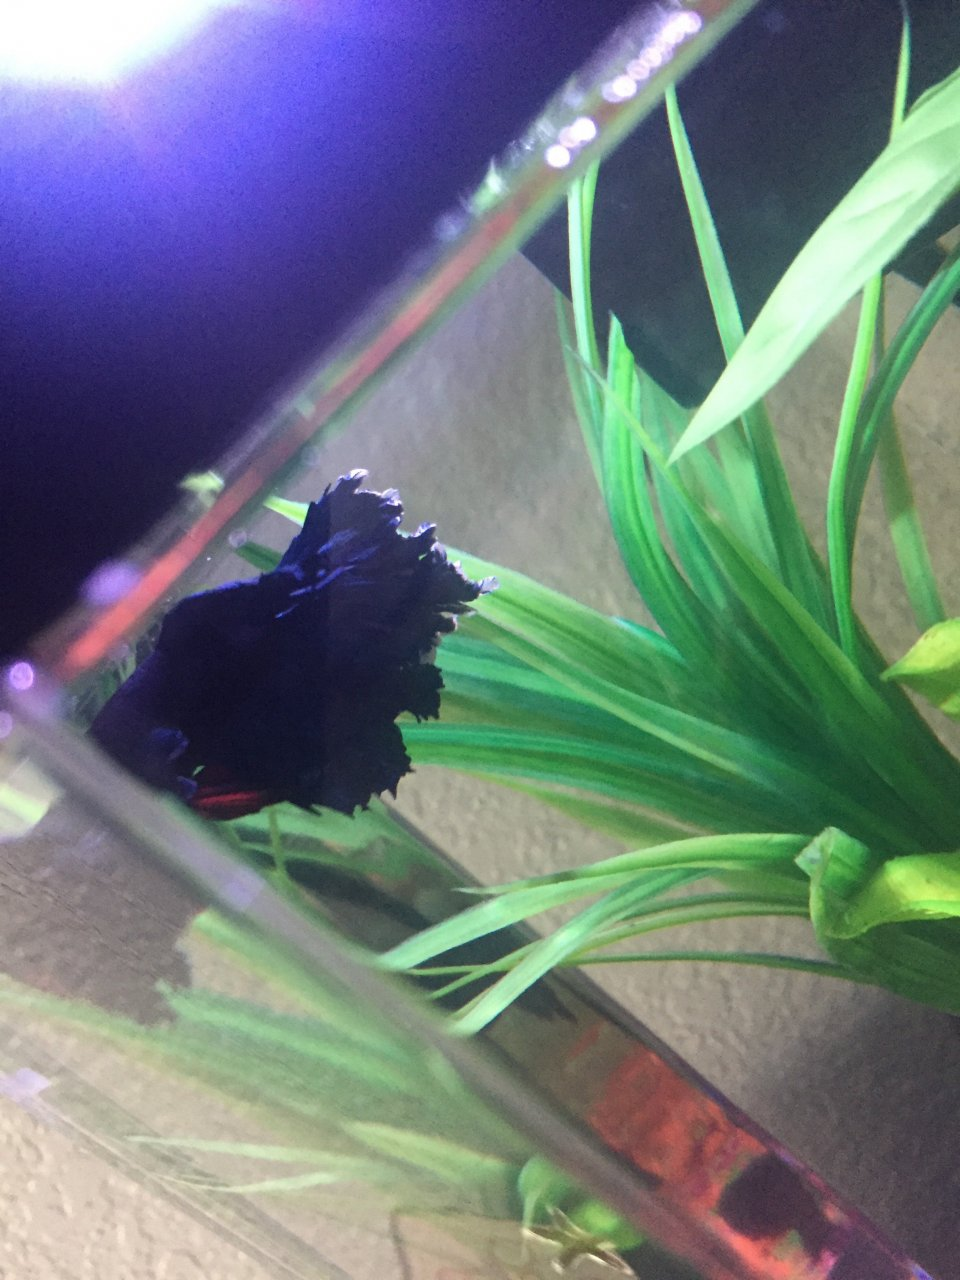 My Betta Fish\'s Fins Are Turning White At The Tips? | My Aquarium Club